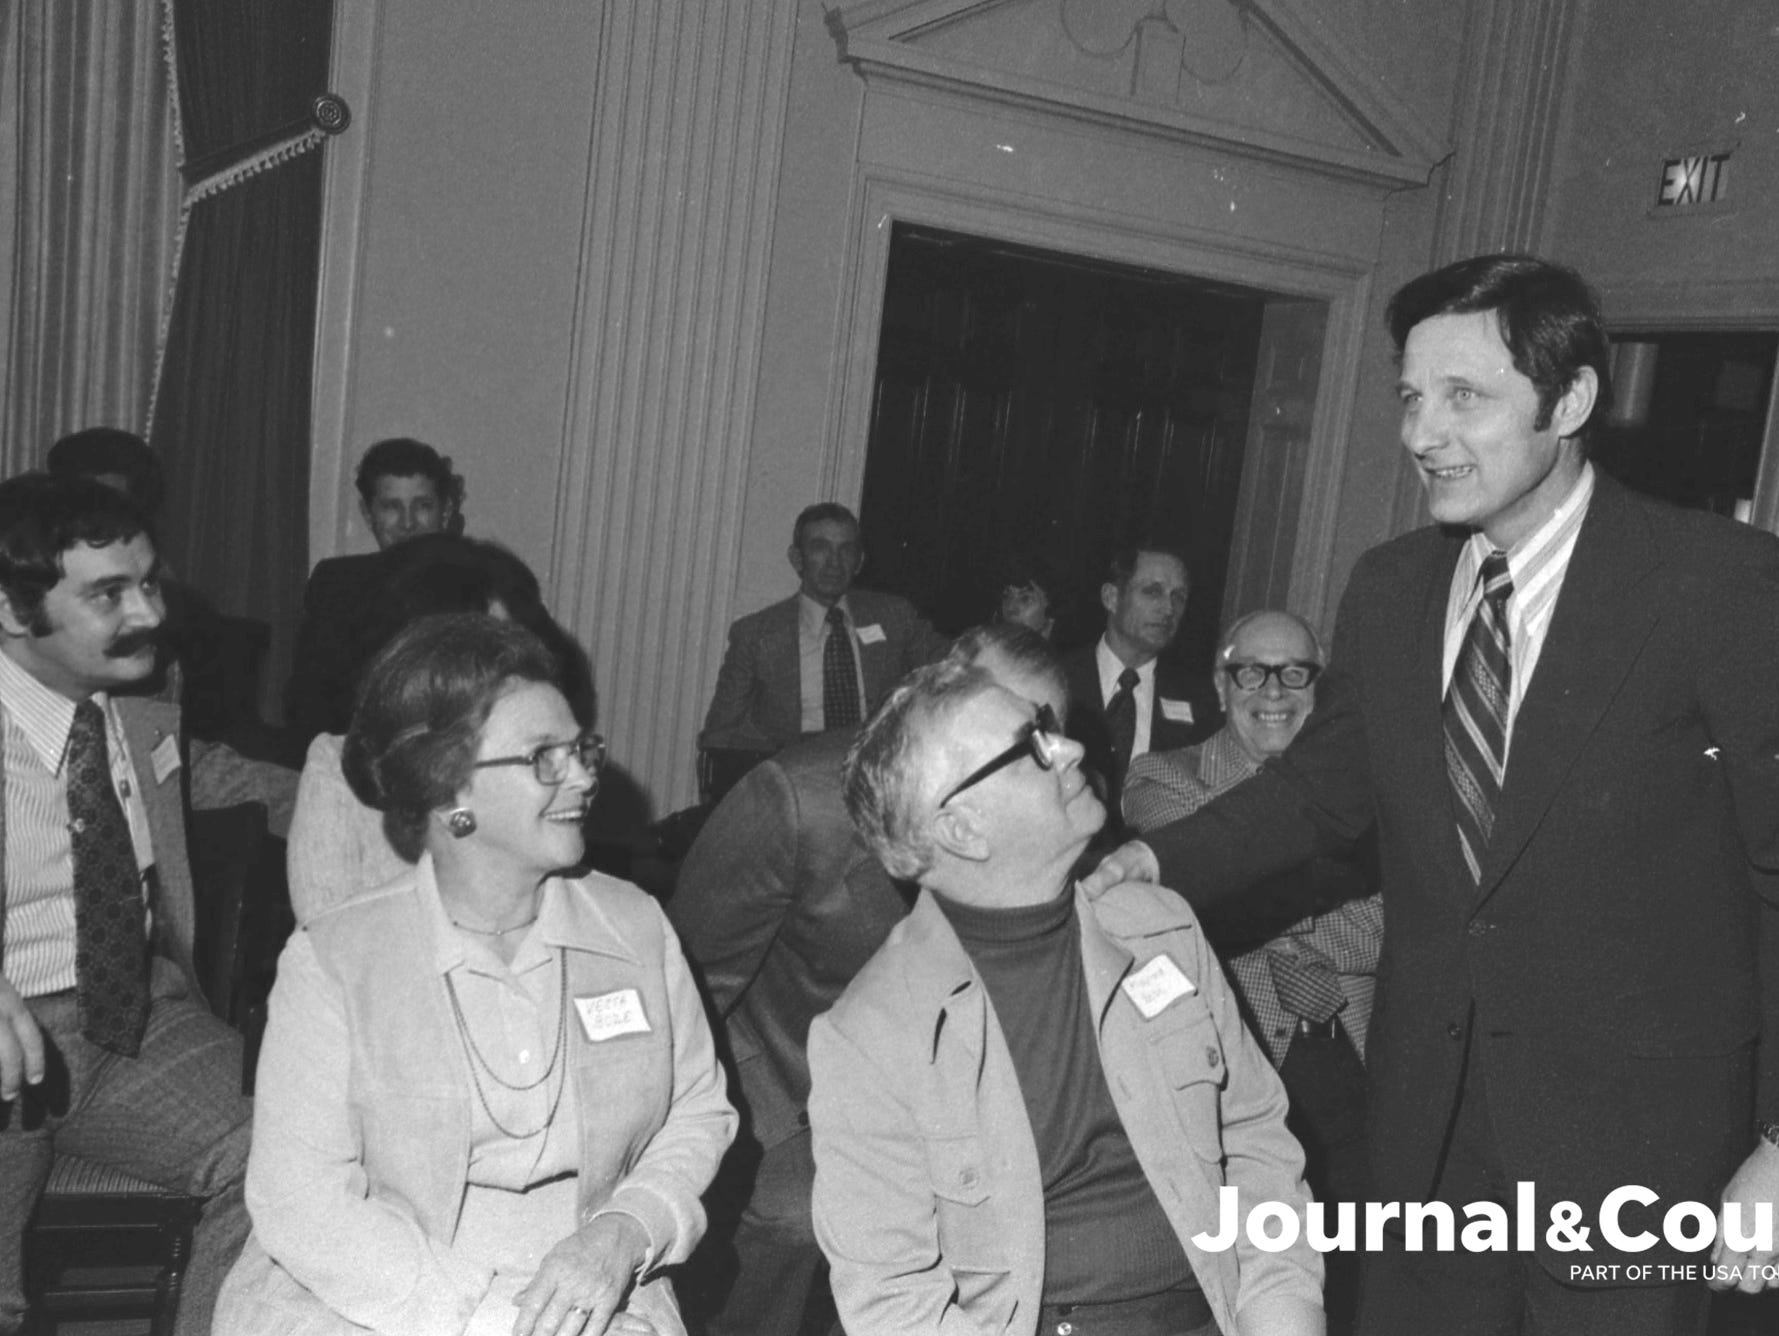 Sen. Birch Bayh greets Vesta and Maynard Bozeman at a program inducting him as a member of the Tippecanoe County Democratic Women's Organization. Photo taken Feb. 19, 1975.